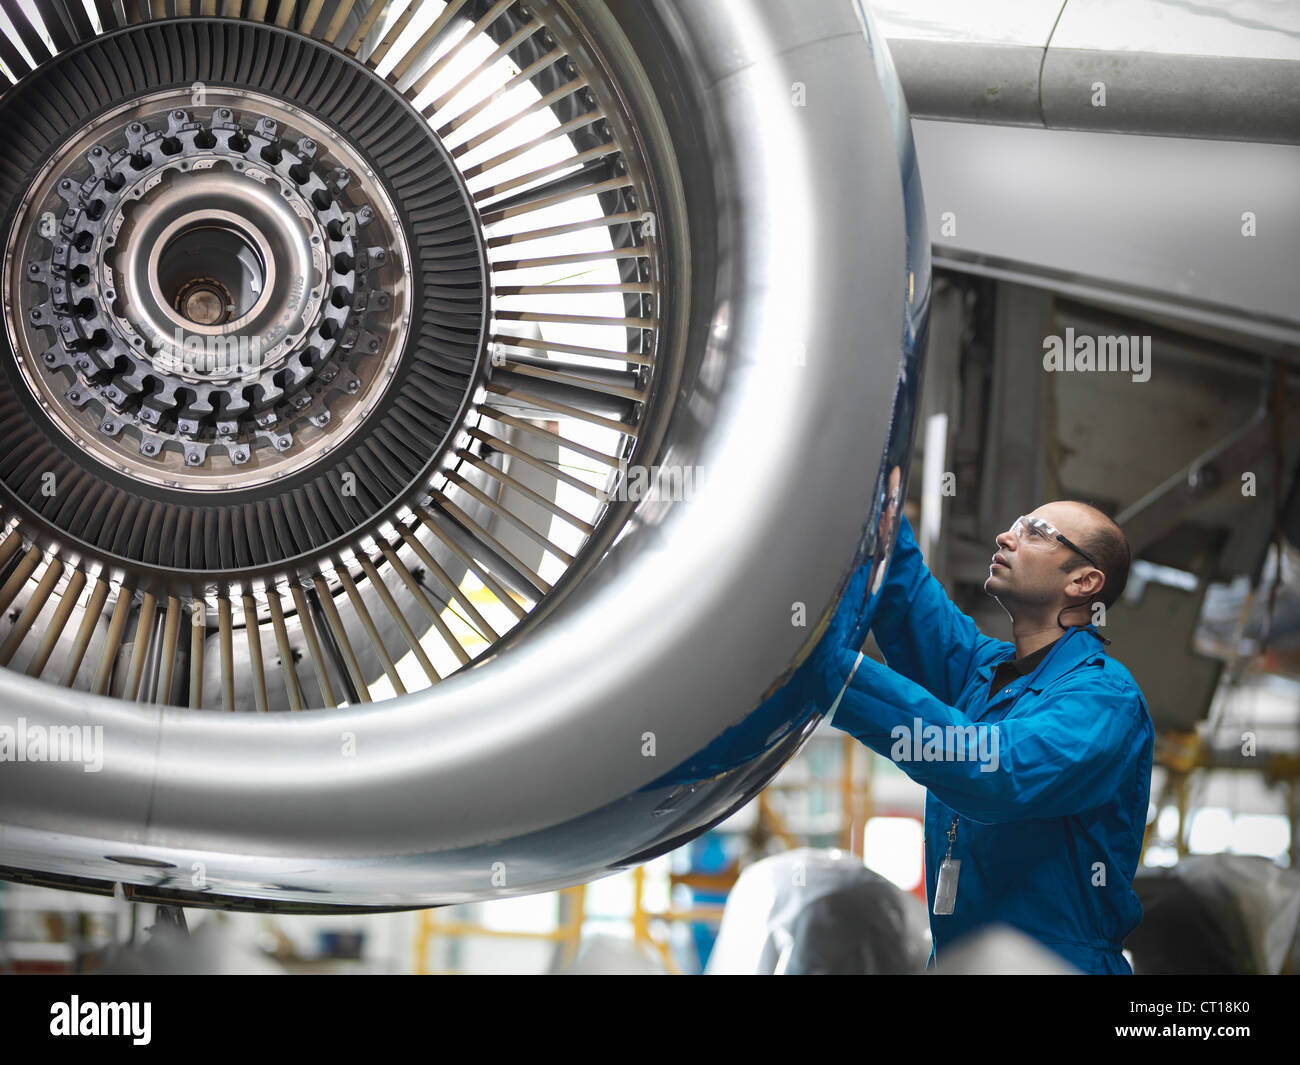 Worker examining airplane engine - Stock Image